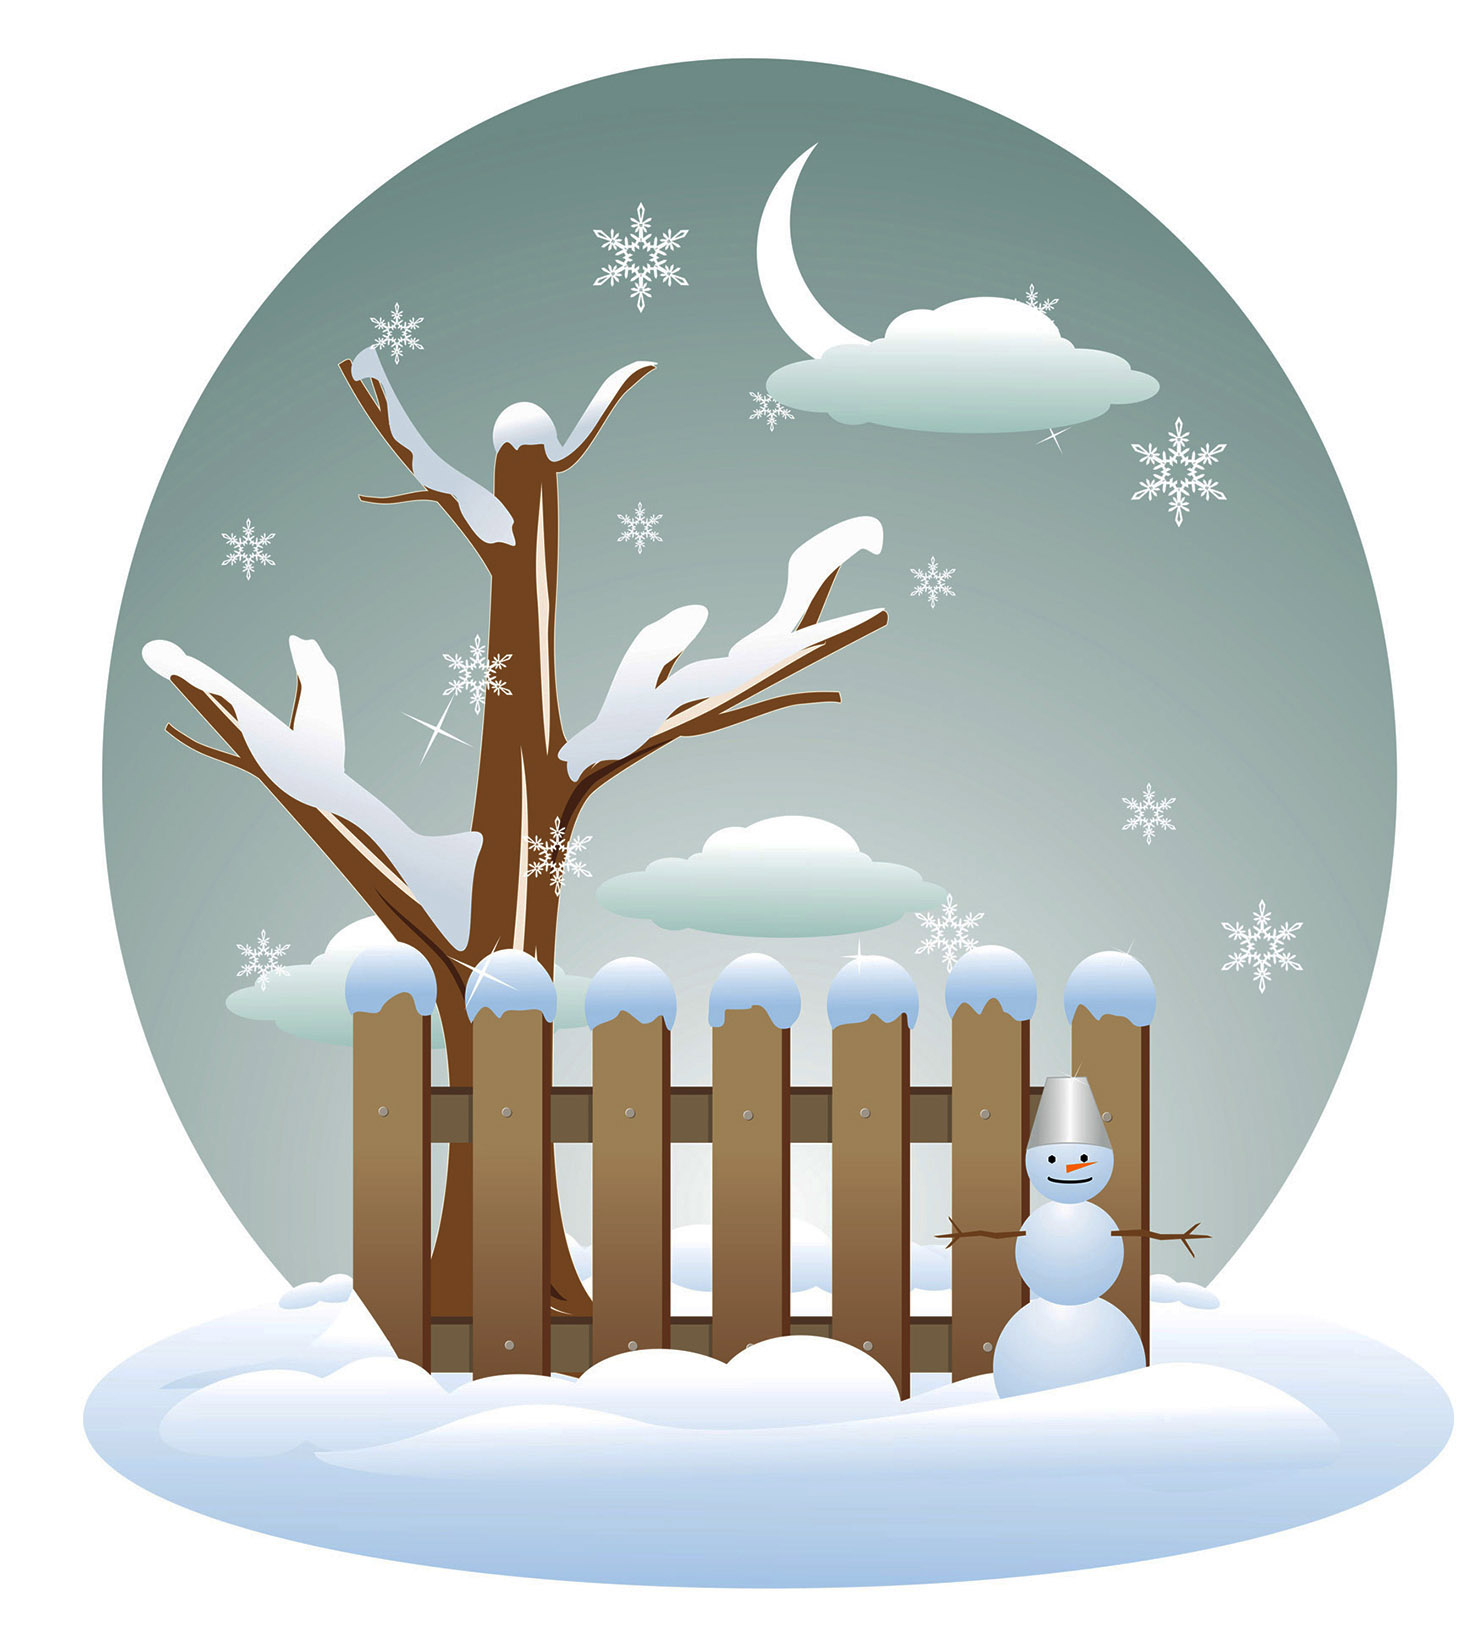 Winter clipart image clipart library library Winter clipart 5 » Clipart Station clipart library library